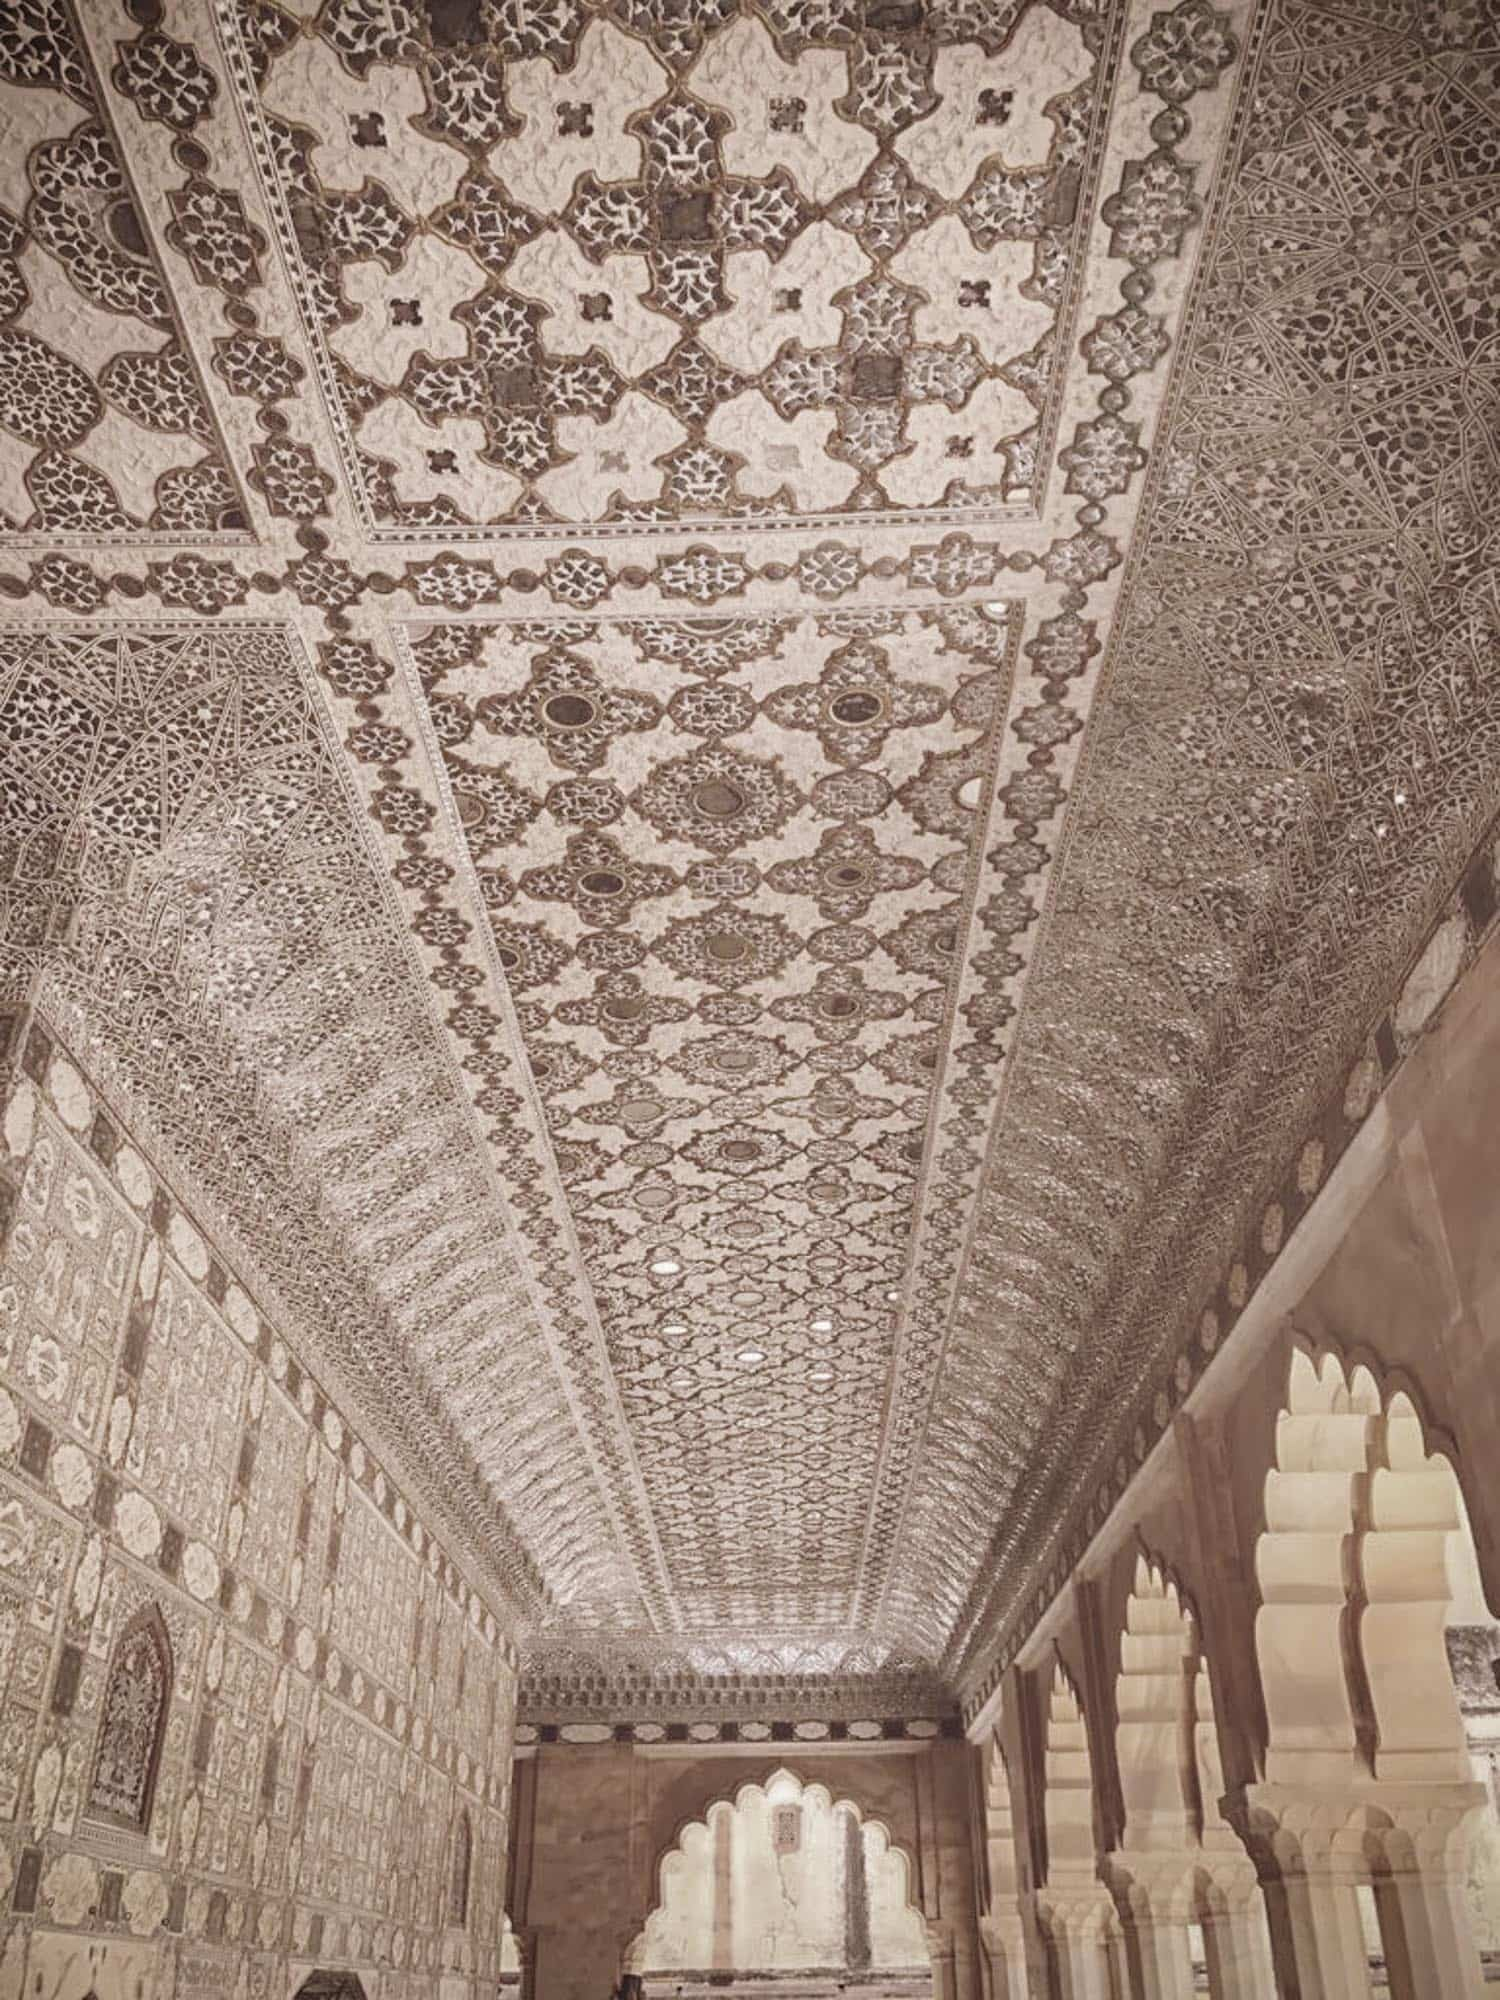 Sheesh Mahal (Hall of Mirrors)